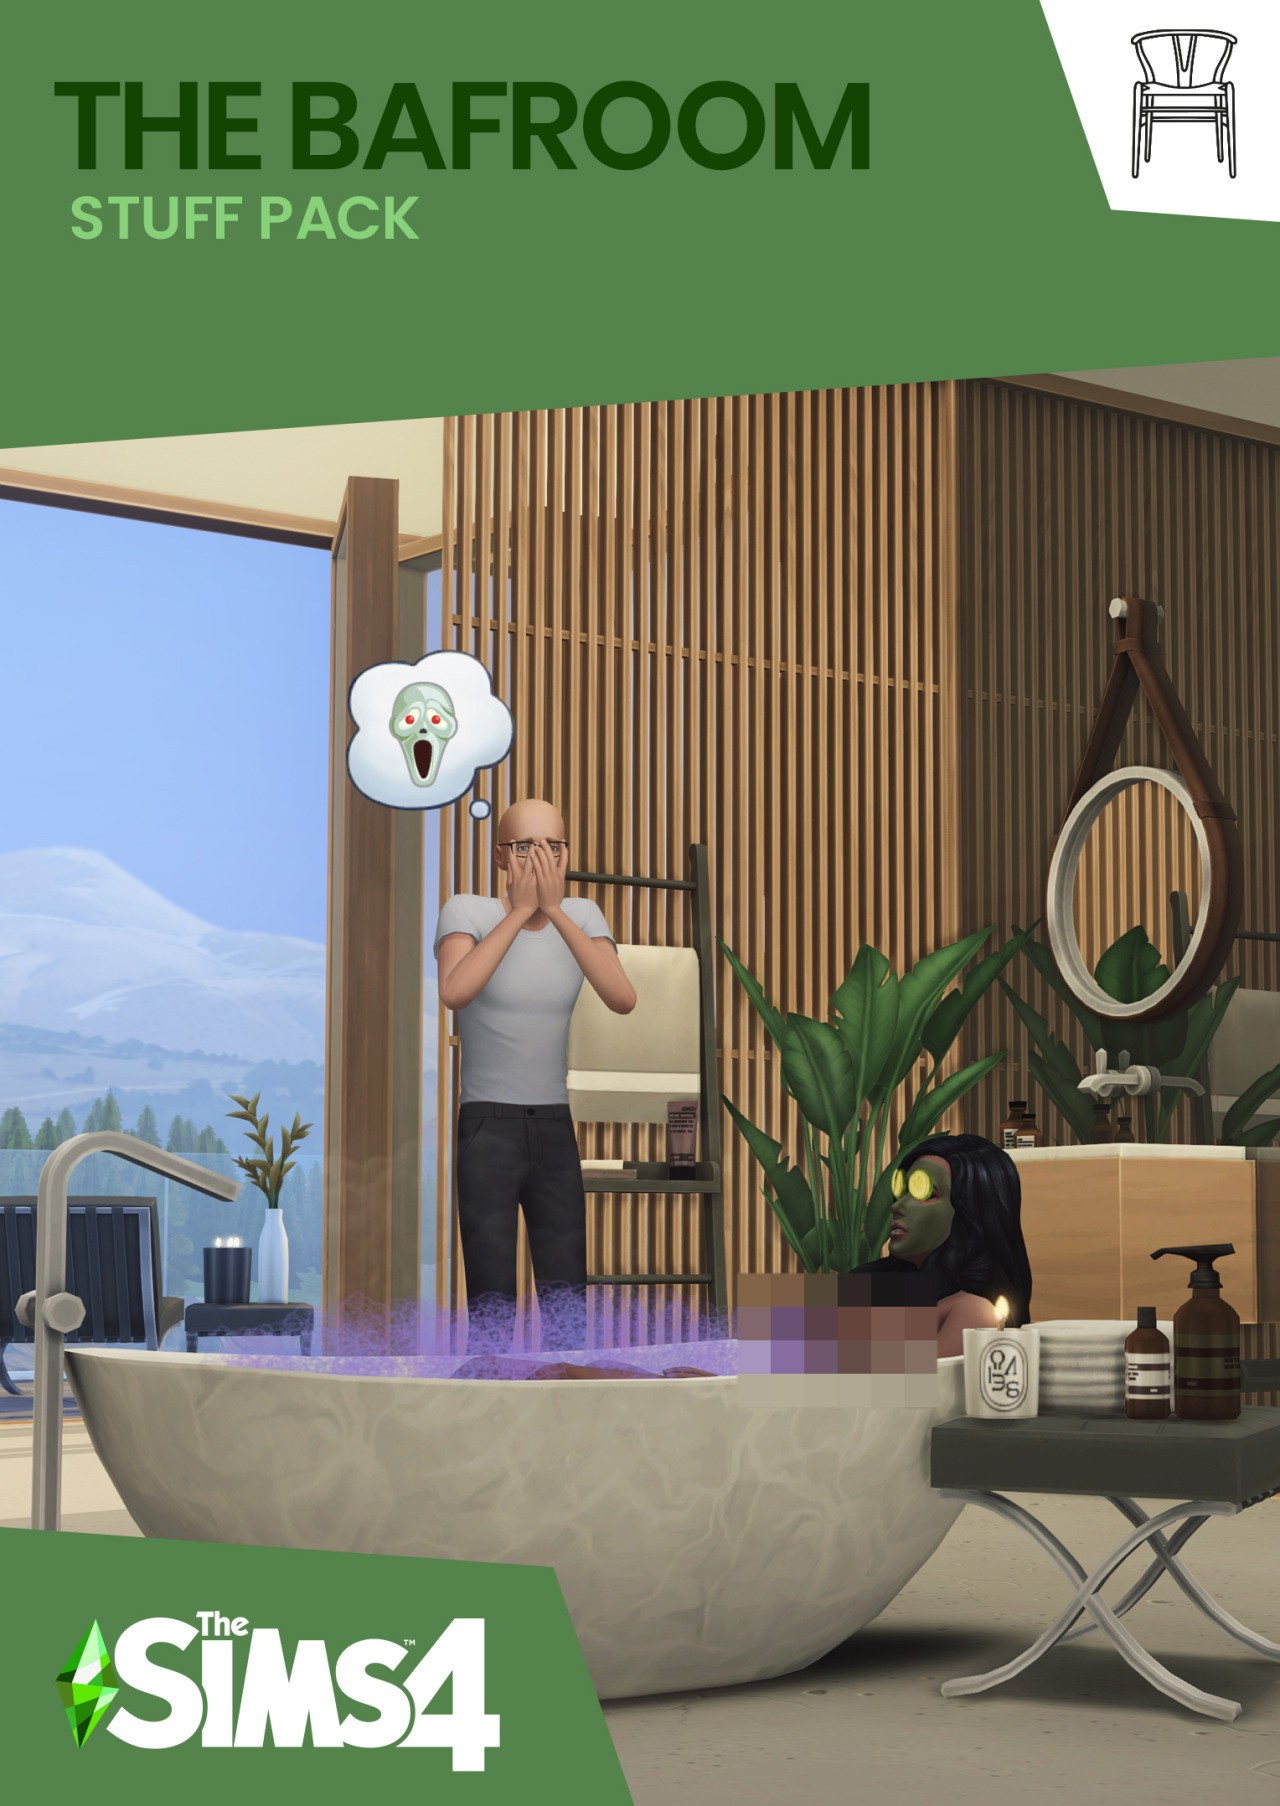 The Sims 4 Bafroom Stuff Pack - The Sim Architect